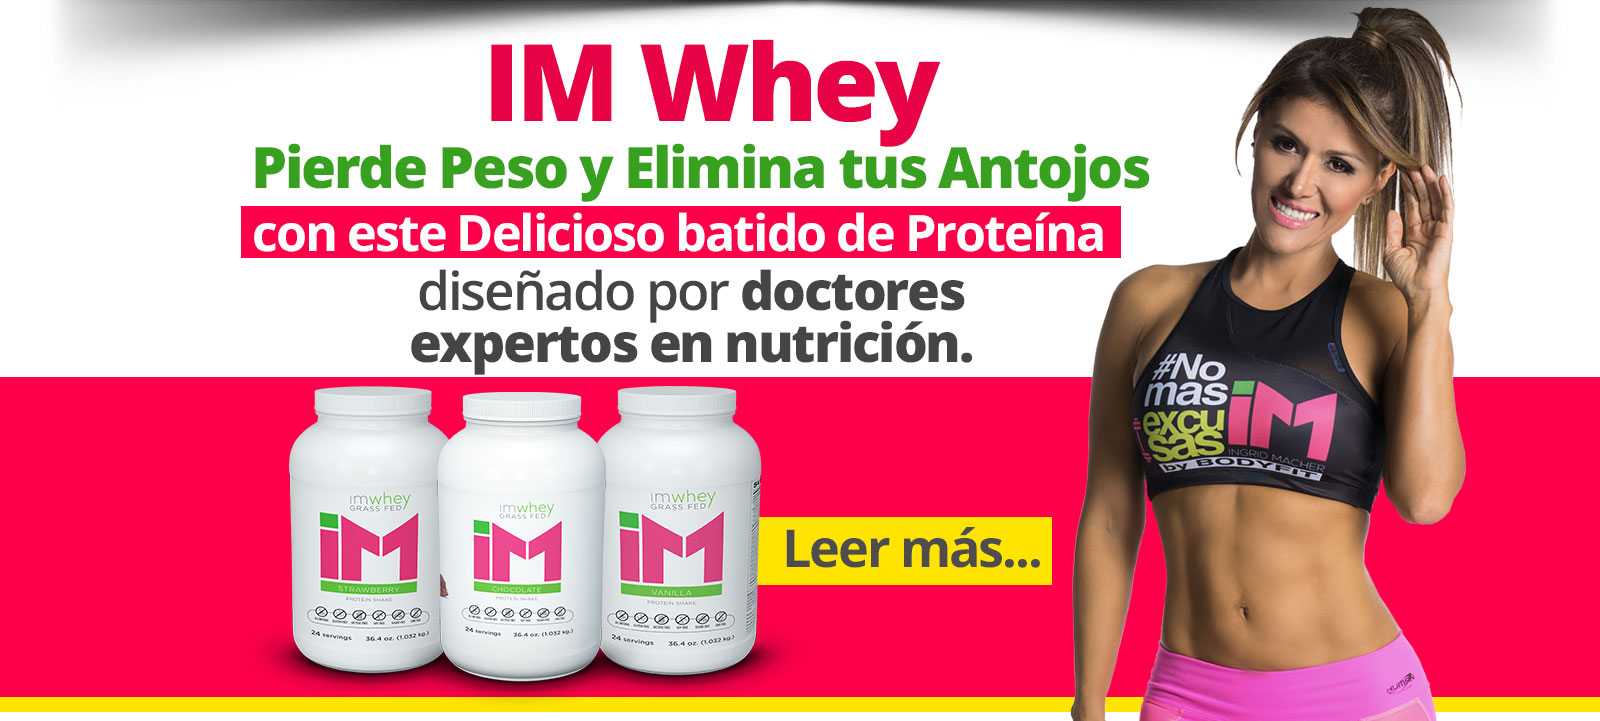 im-whey-slider-ingrid-macher-web